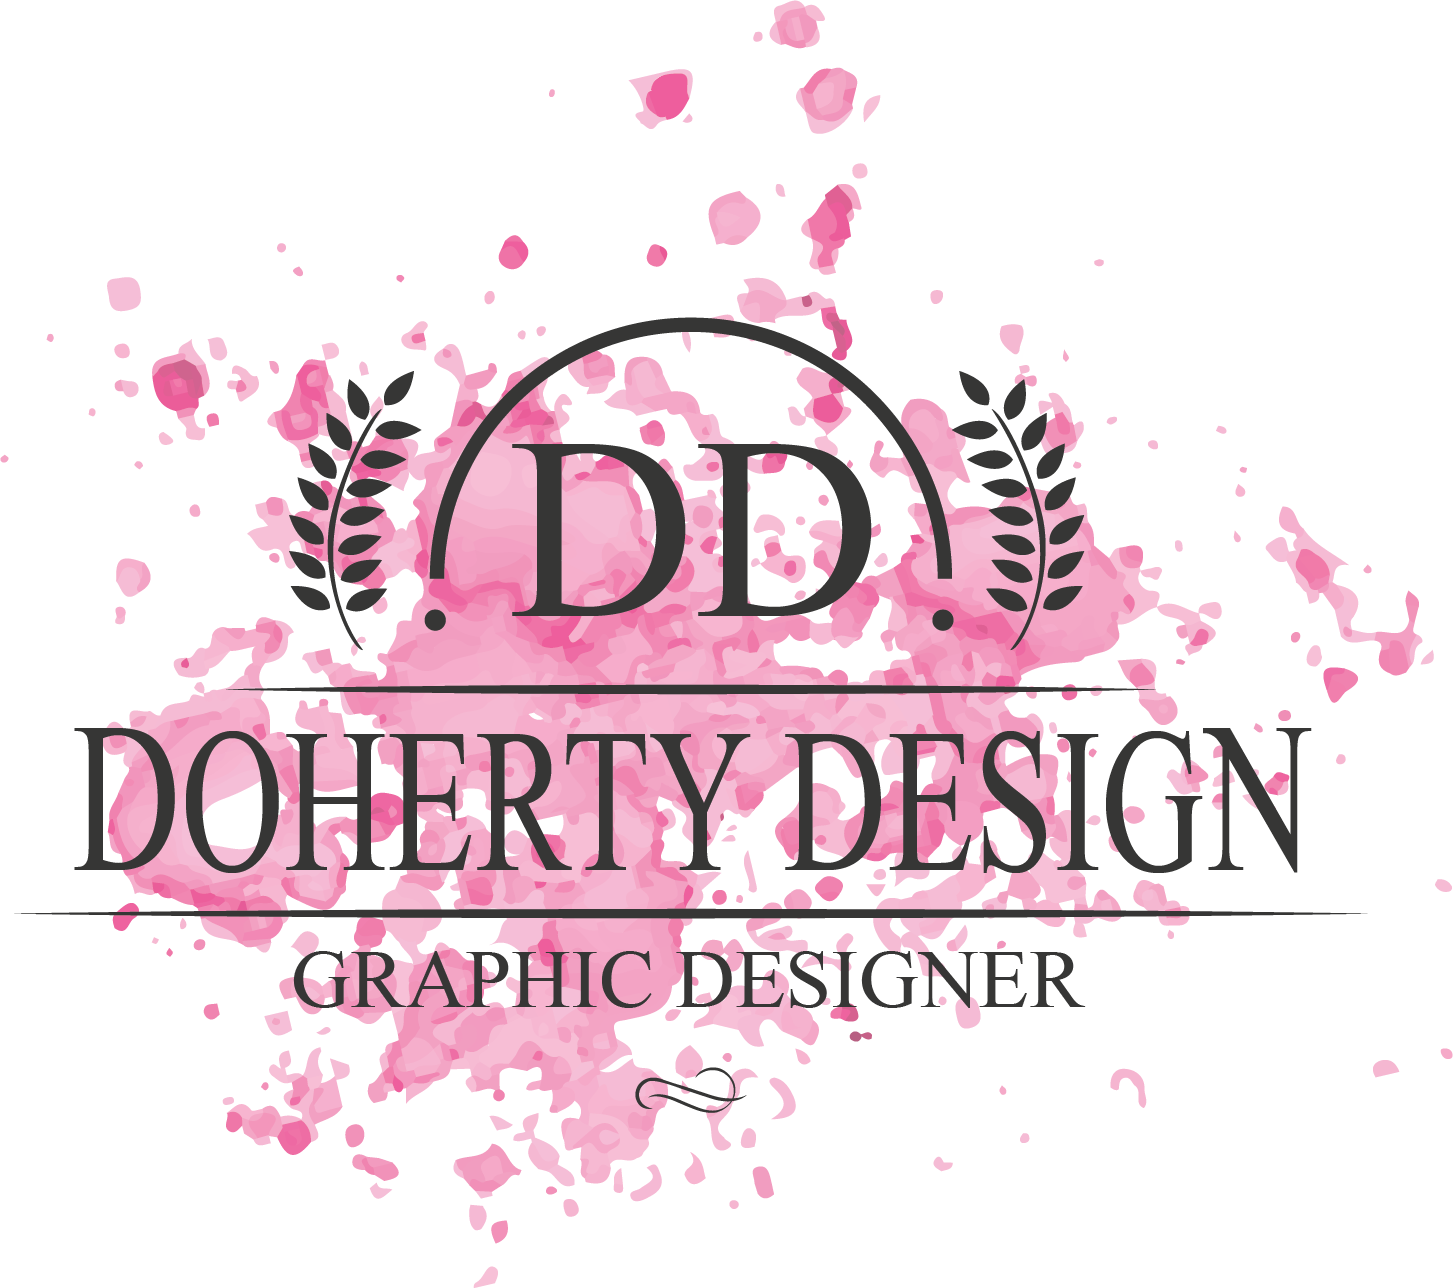 Doherty Design